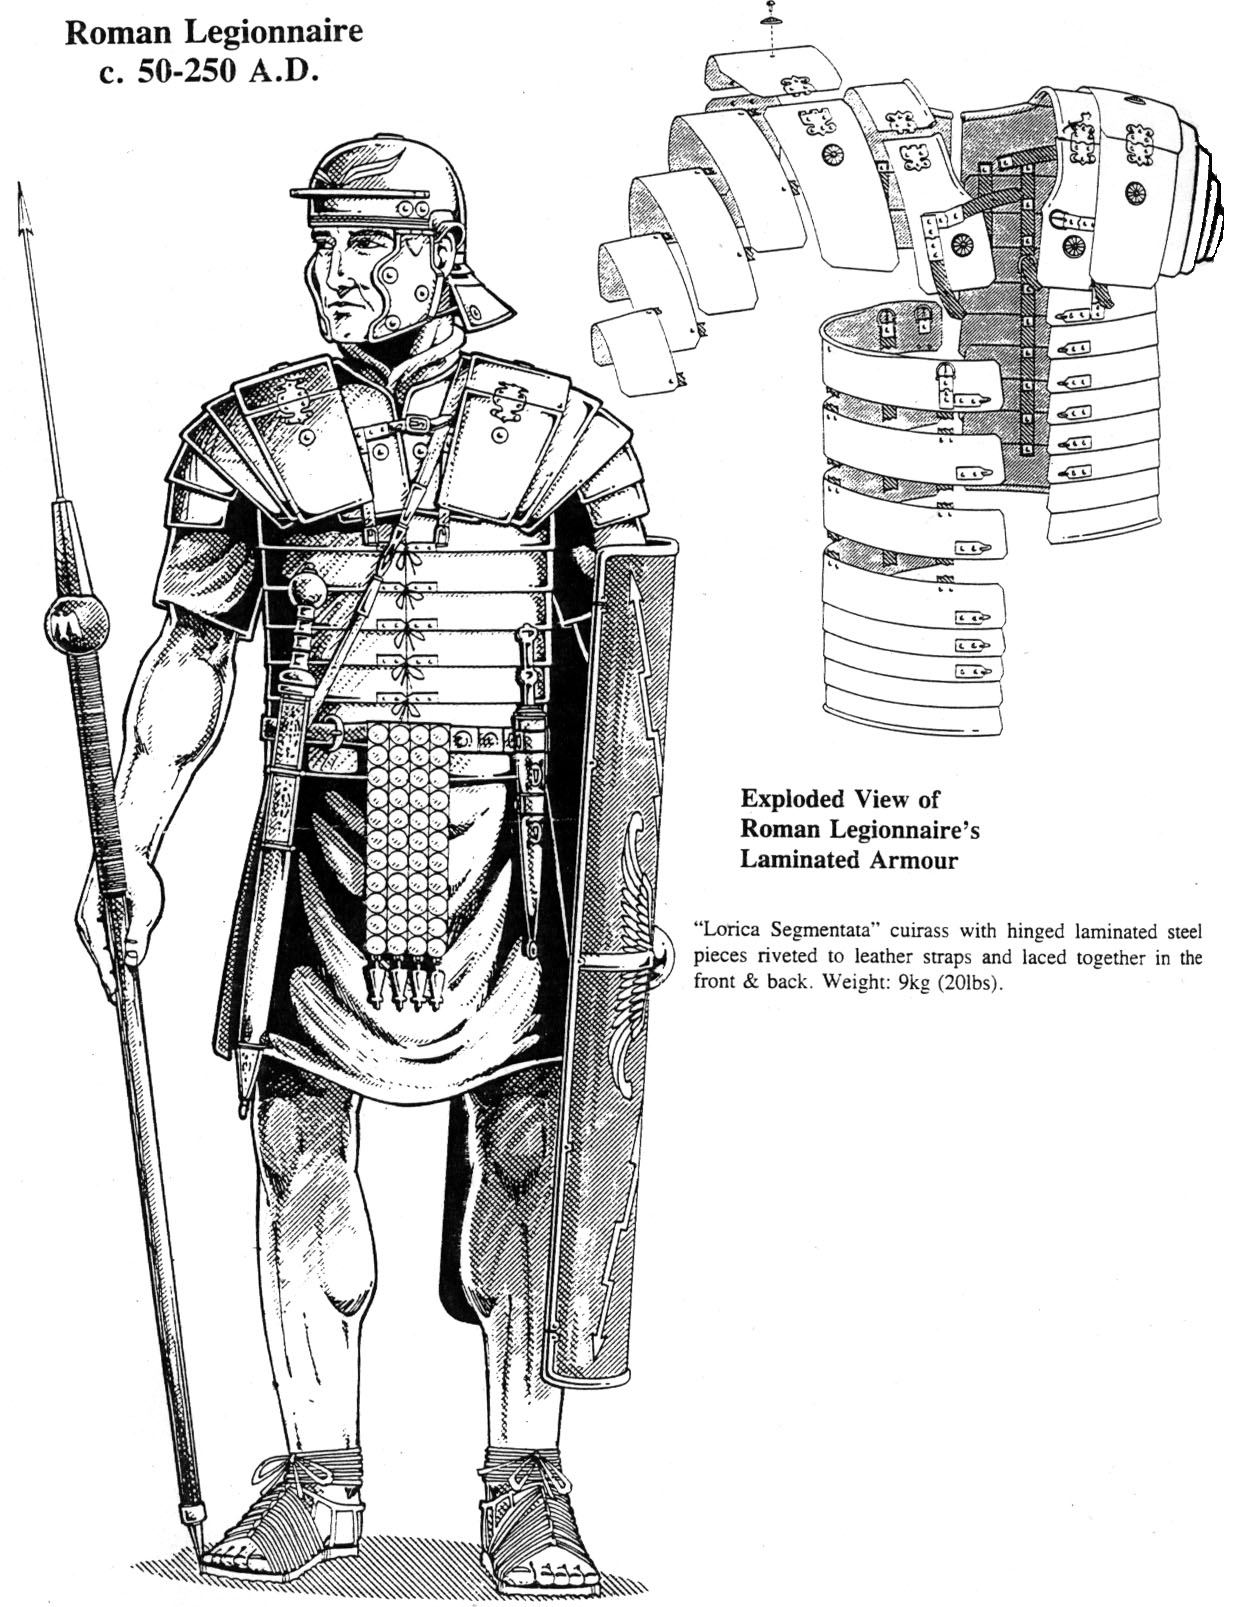 Roman Army Weapons and Armor http://info.stylee32.net/index.php?dir=Weapons+and+Military%2FArmor%2F